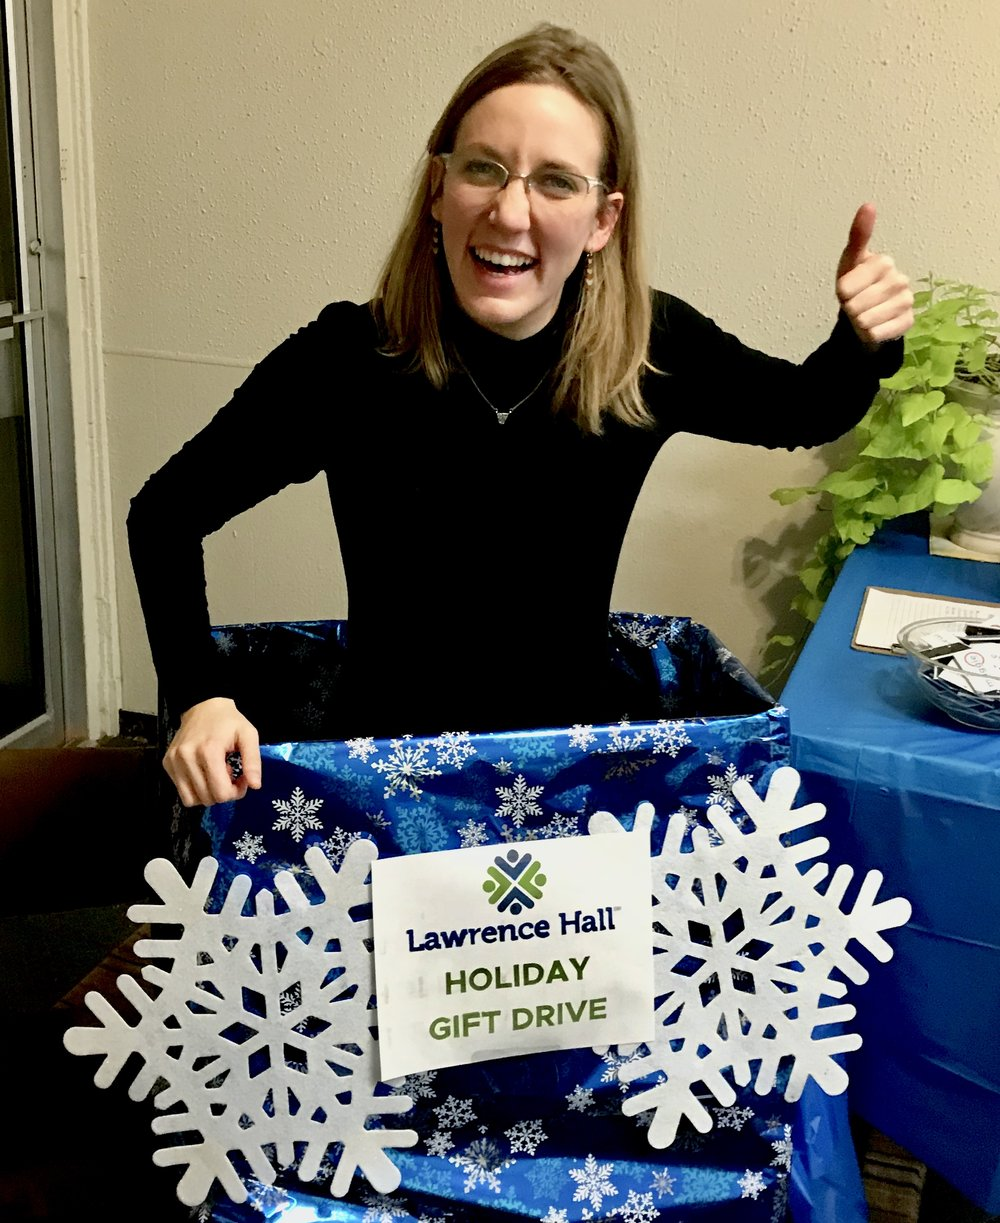 Maggie-OKeefe-40th-Ward-Alderman-Holiday-Gift-Drive